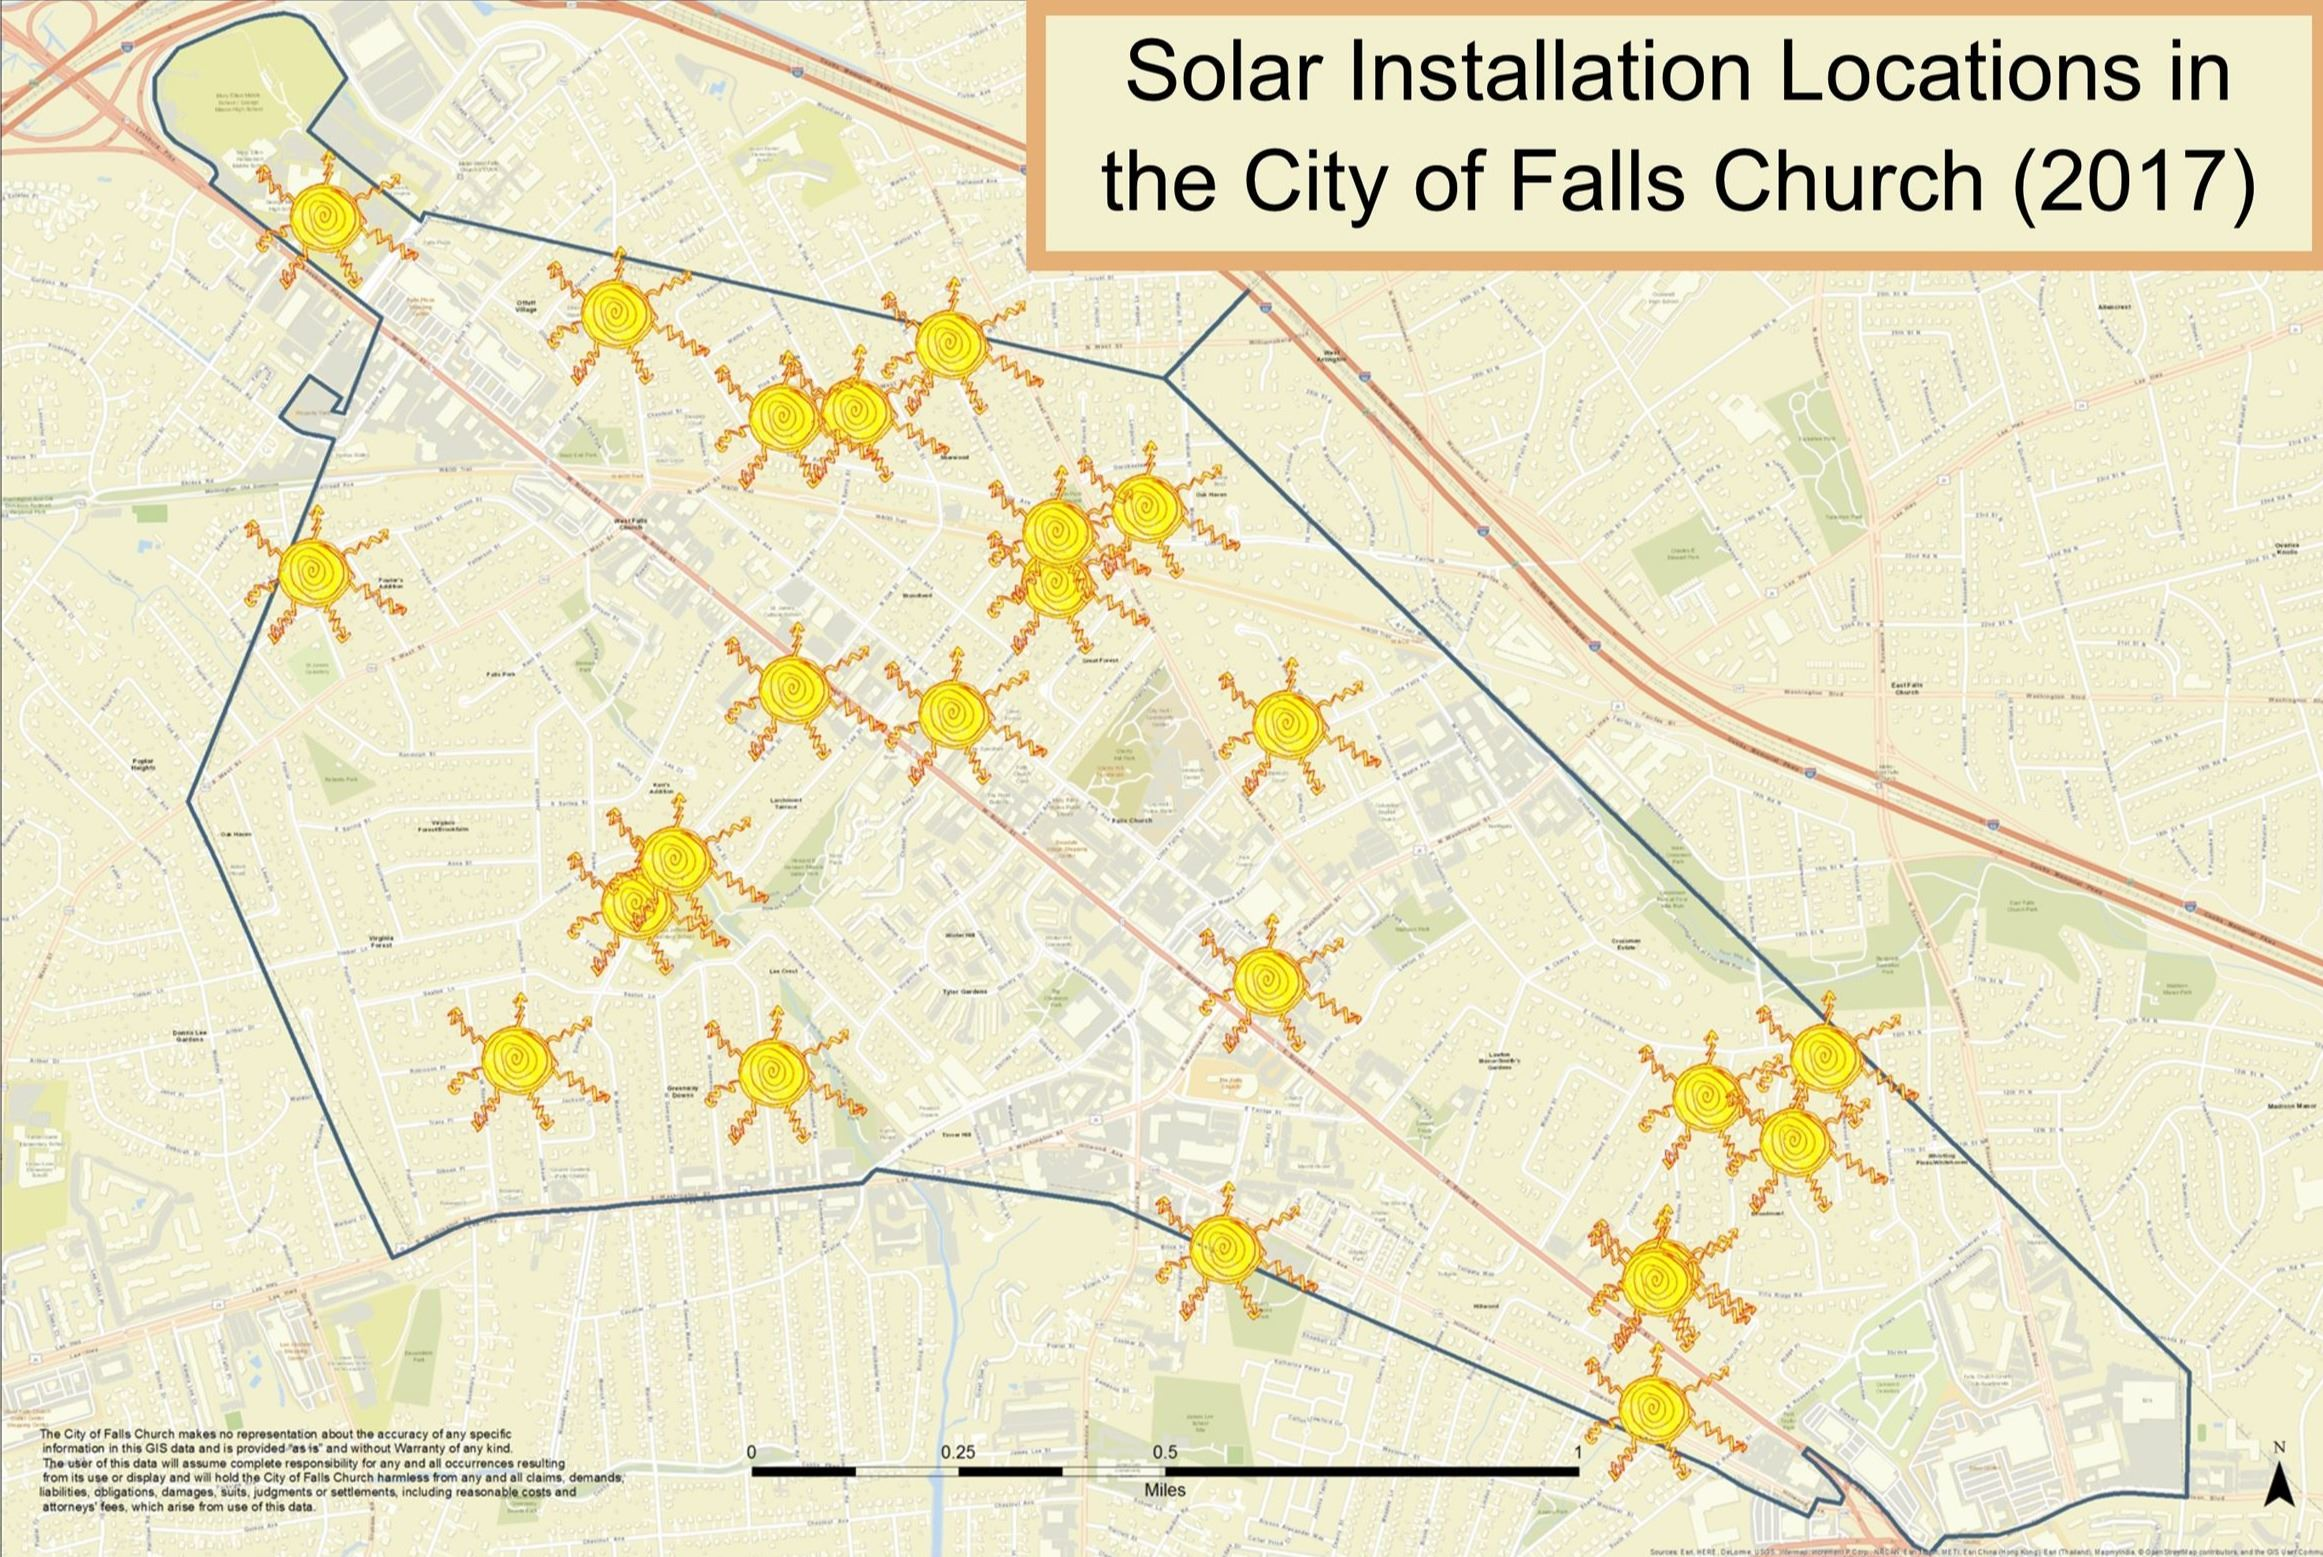 Map showing locations with known solar installations in the City of Falls Church